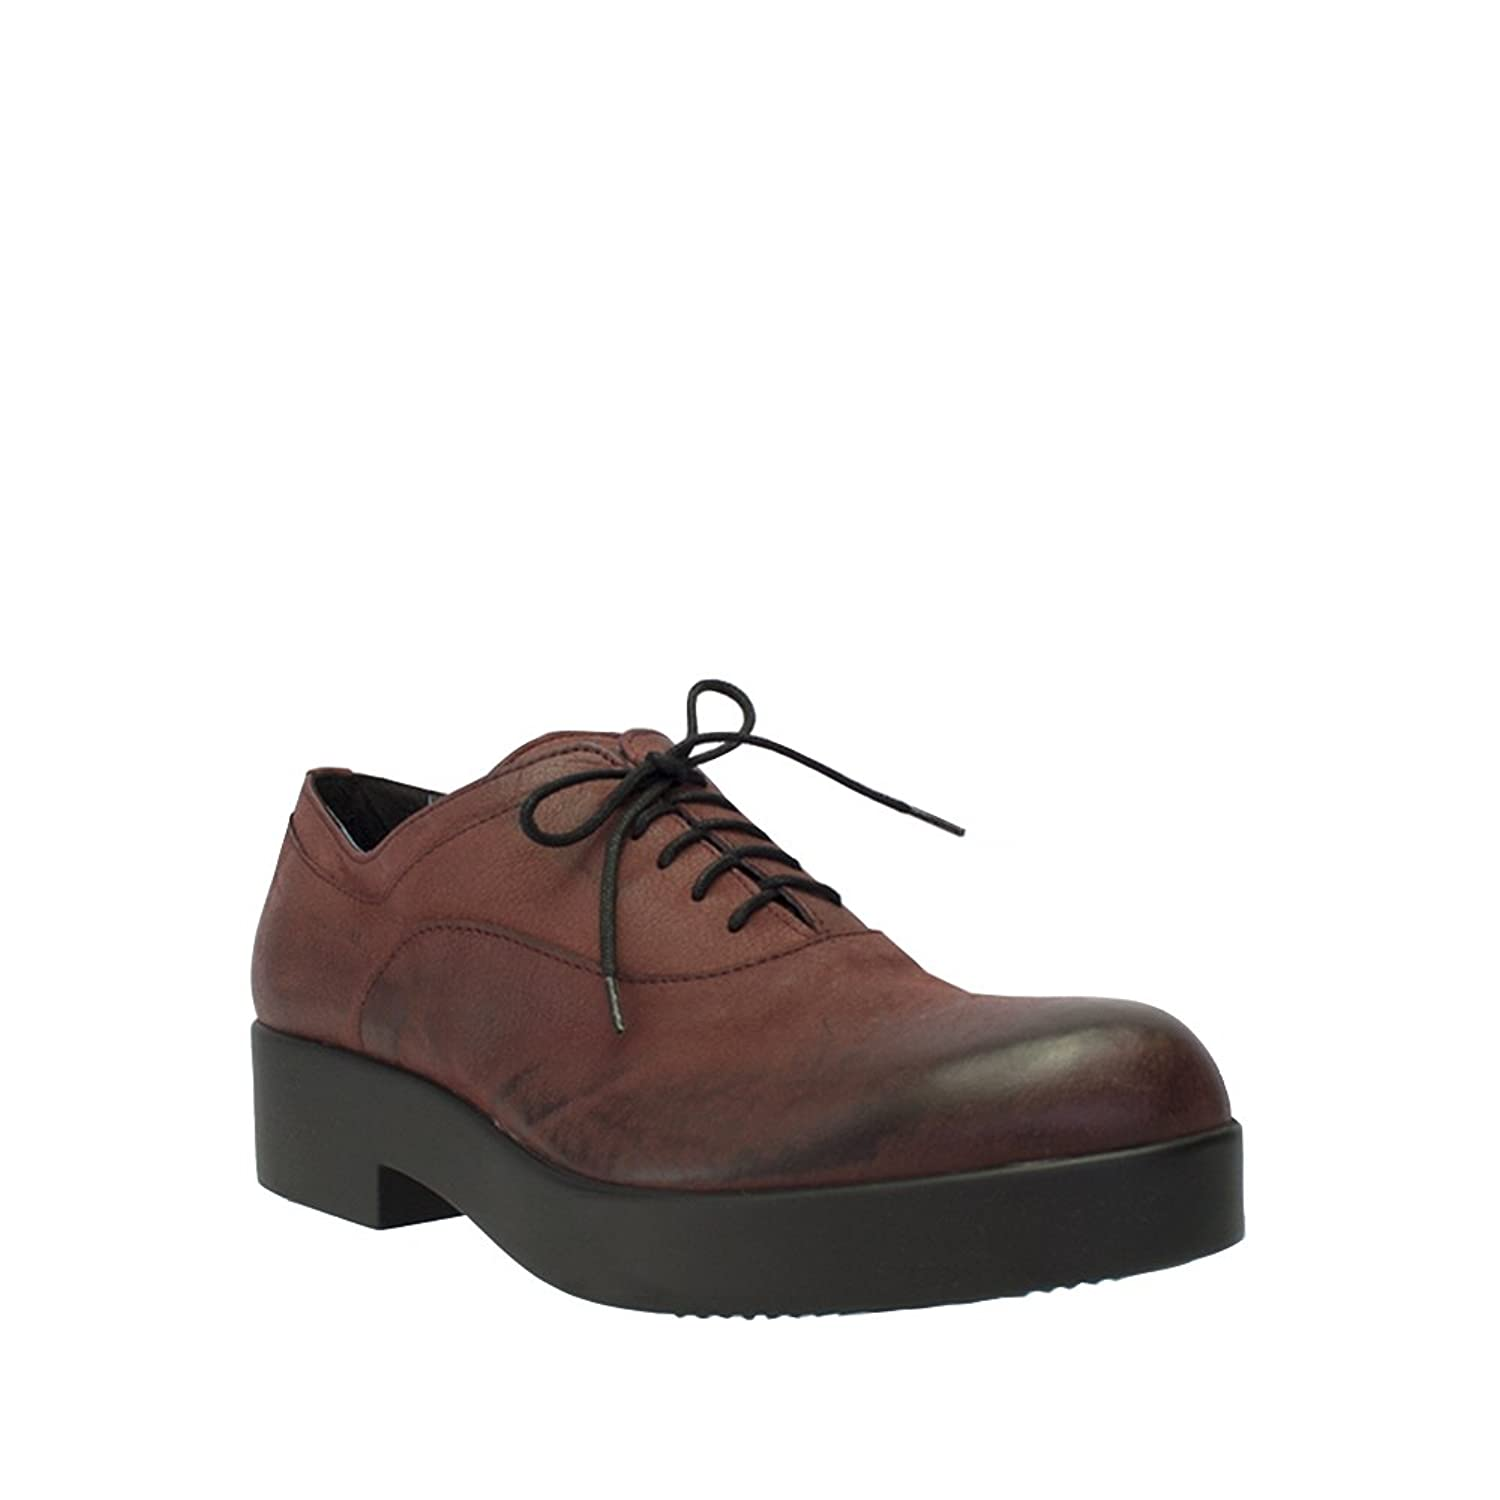 8100 Melrose Wine Distressed Leather Lace Up Oxford